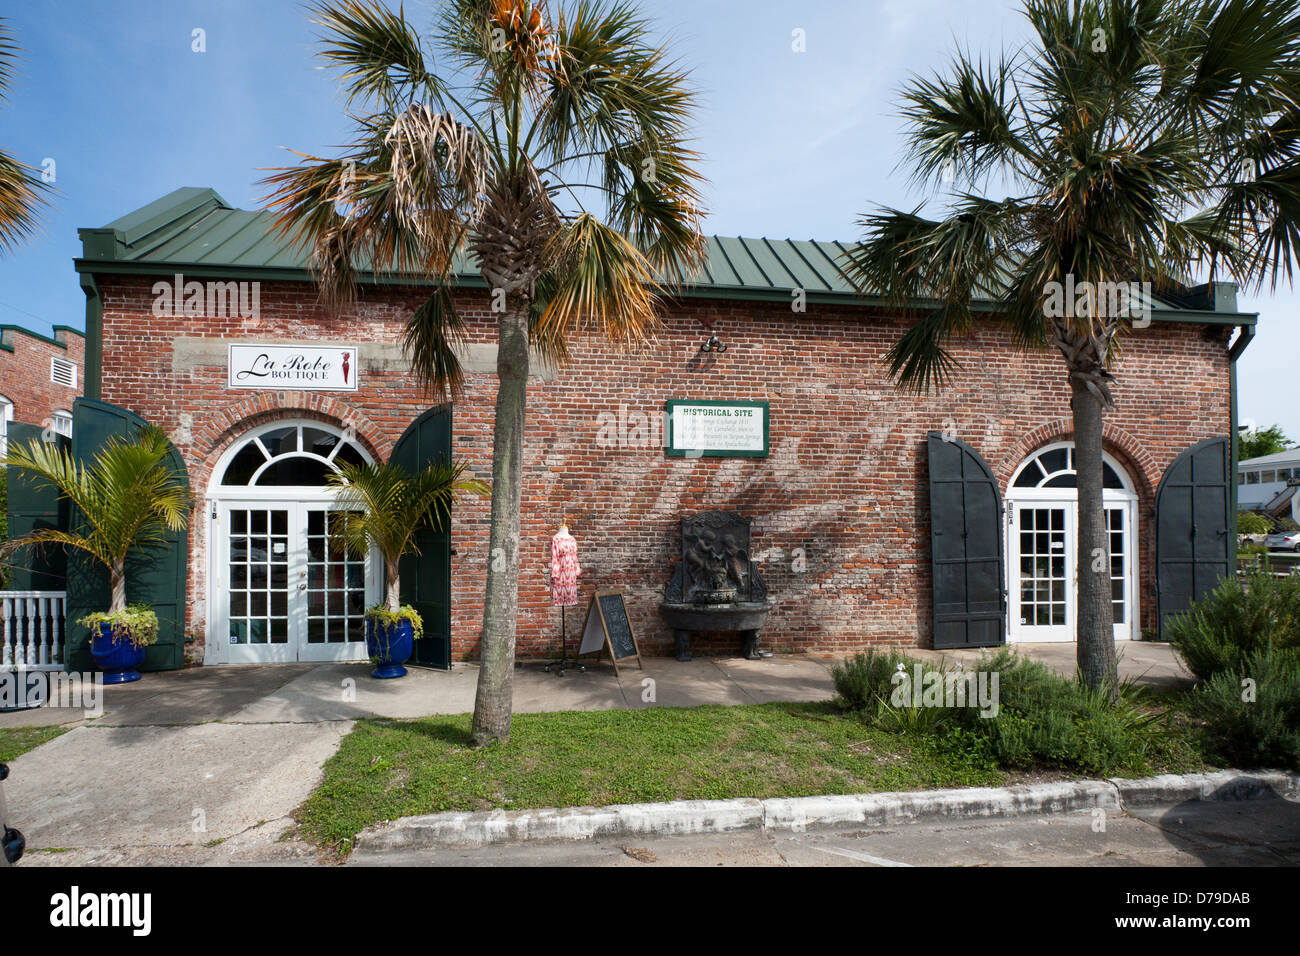 Shops located in historic Sponge Exchange building on Avenue E in downtown Apalachicola, FL, USA - Stock Image